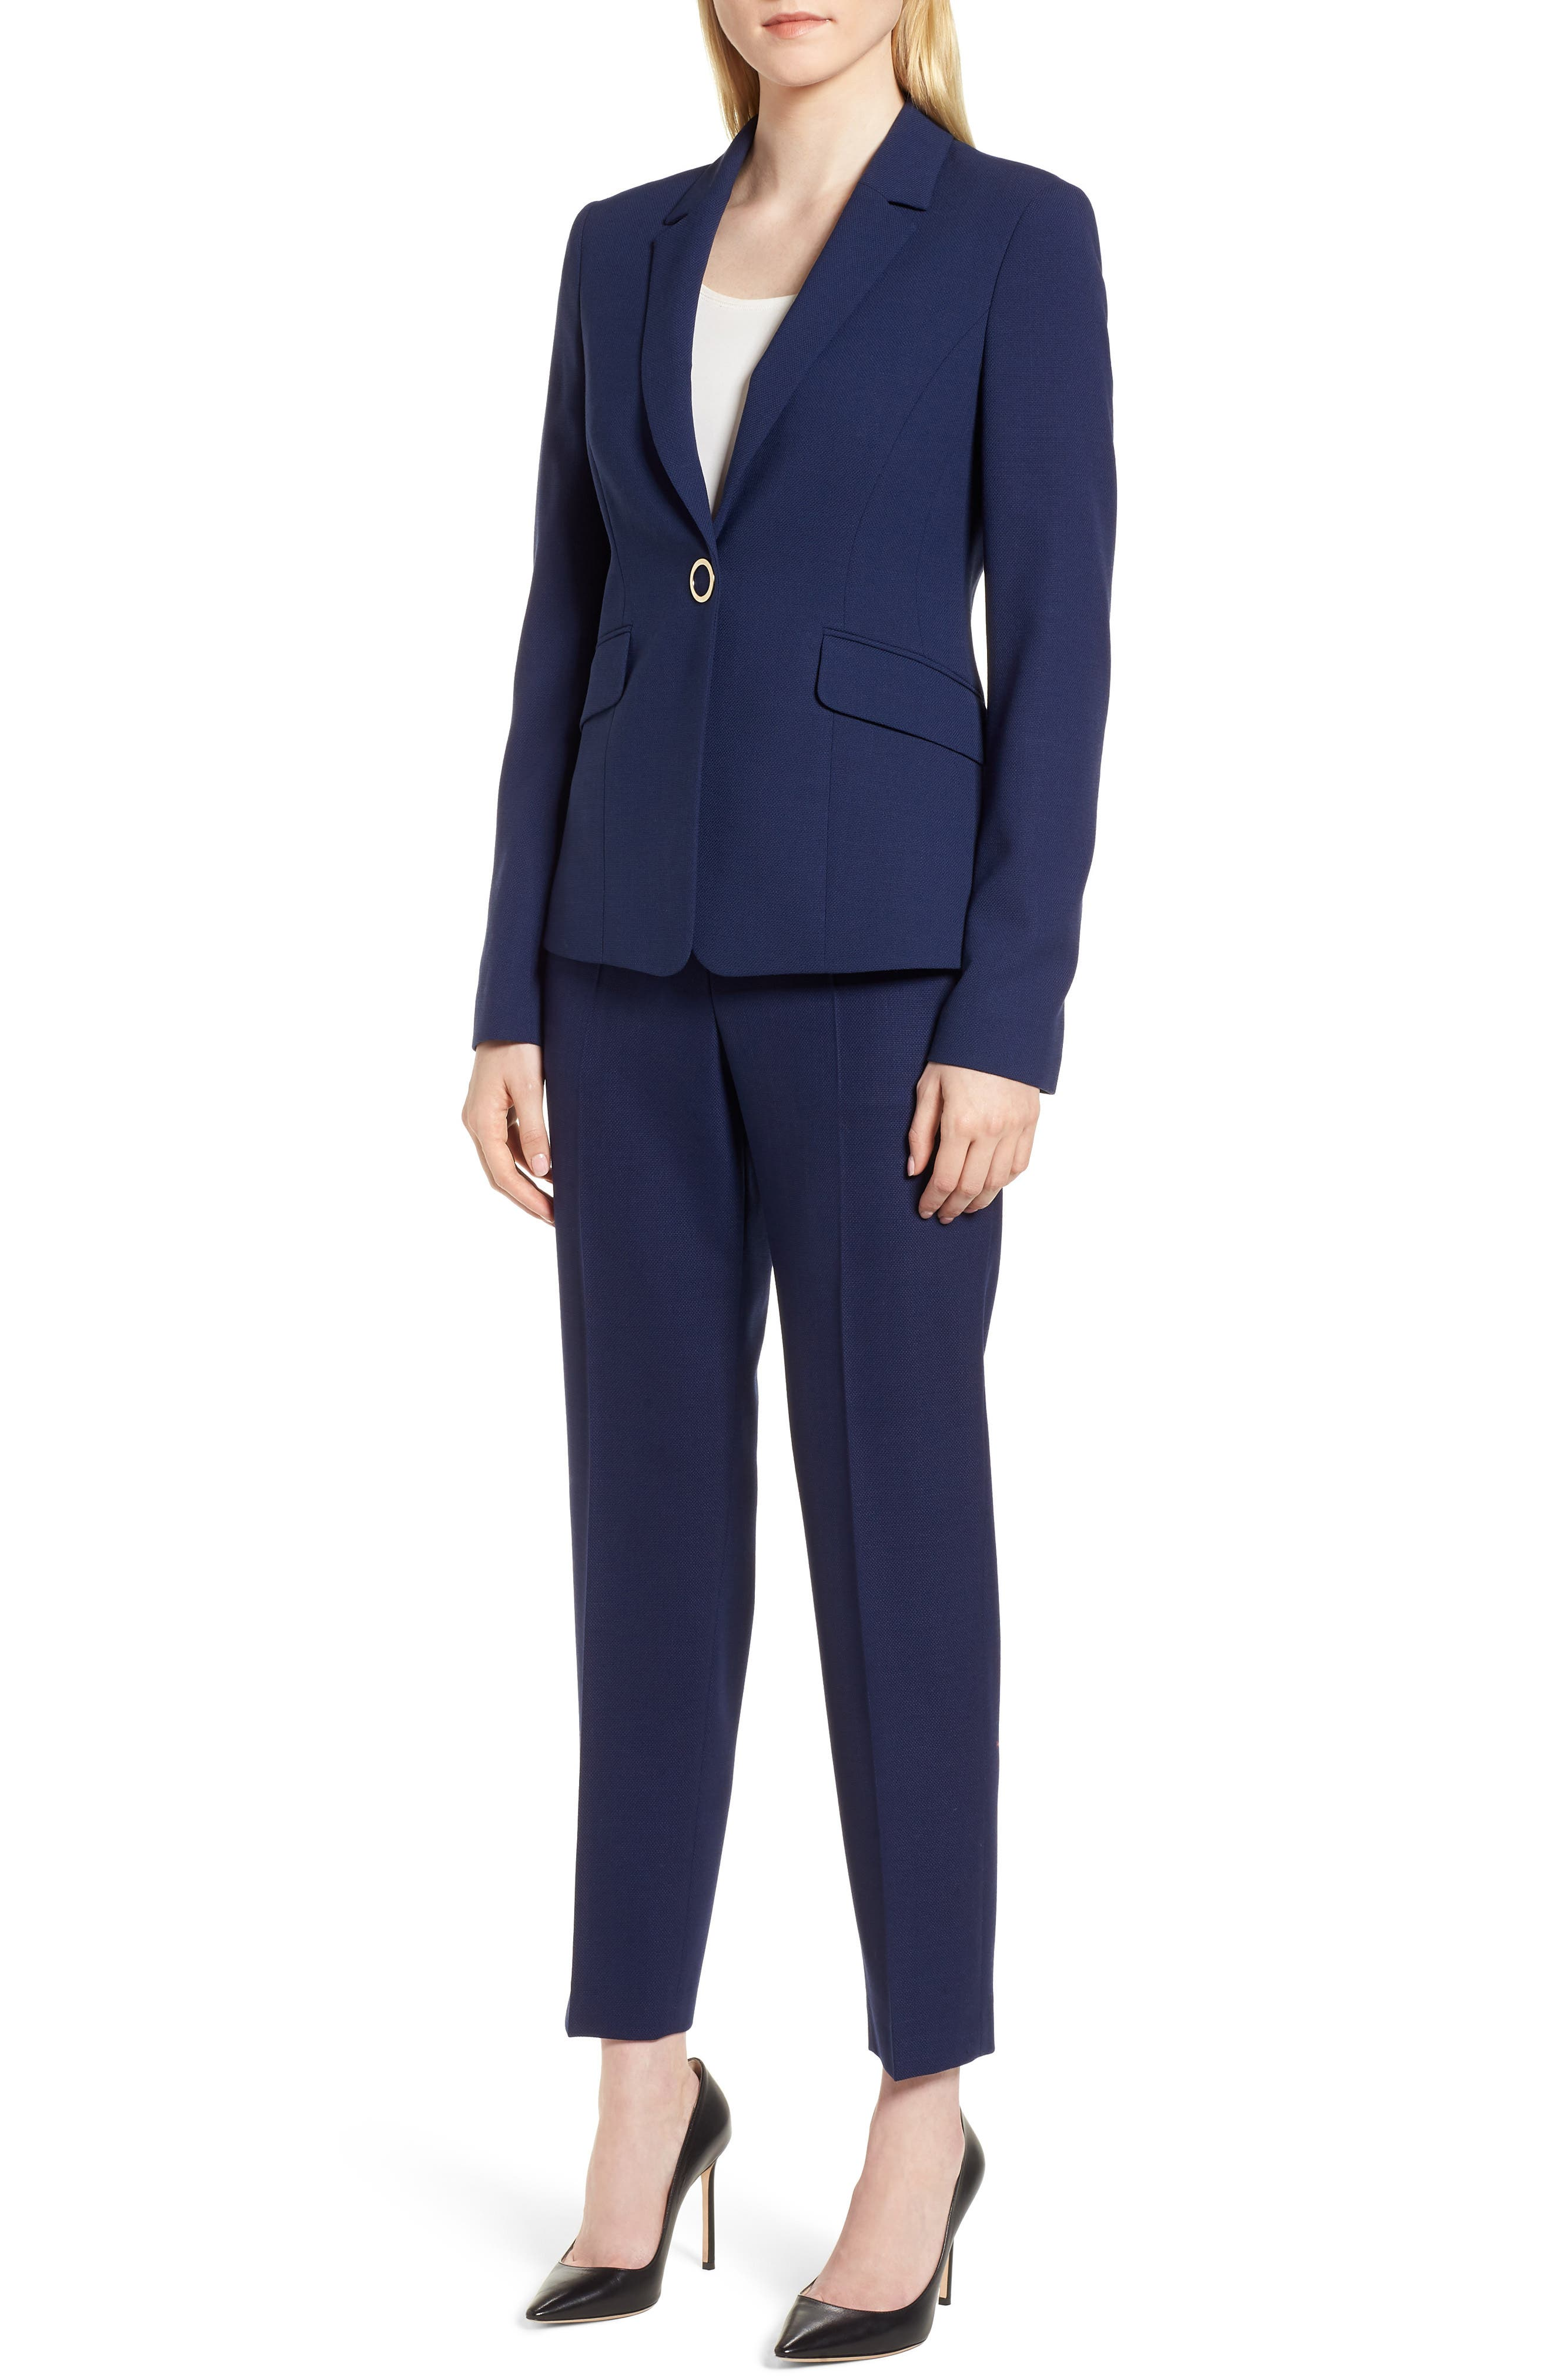 Jibalena Textured Stretch Wool Suit Jacket,                             Alternate thumbnail 5, color,                             Nautical